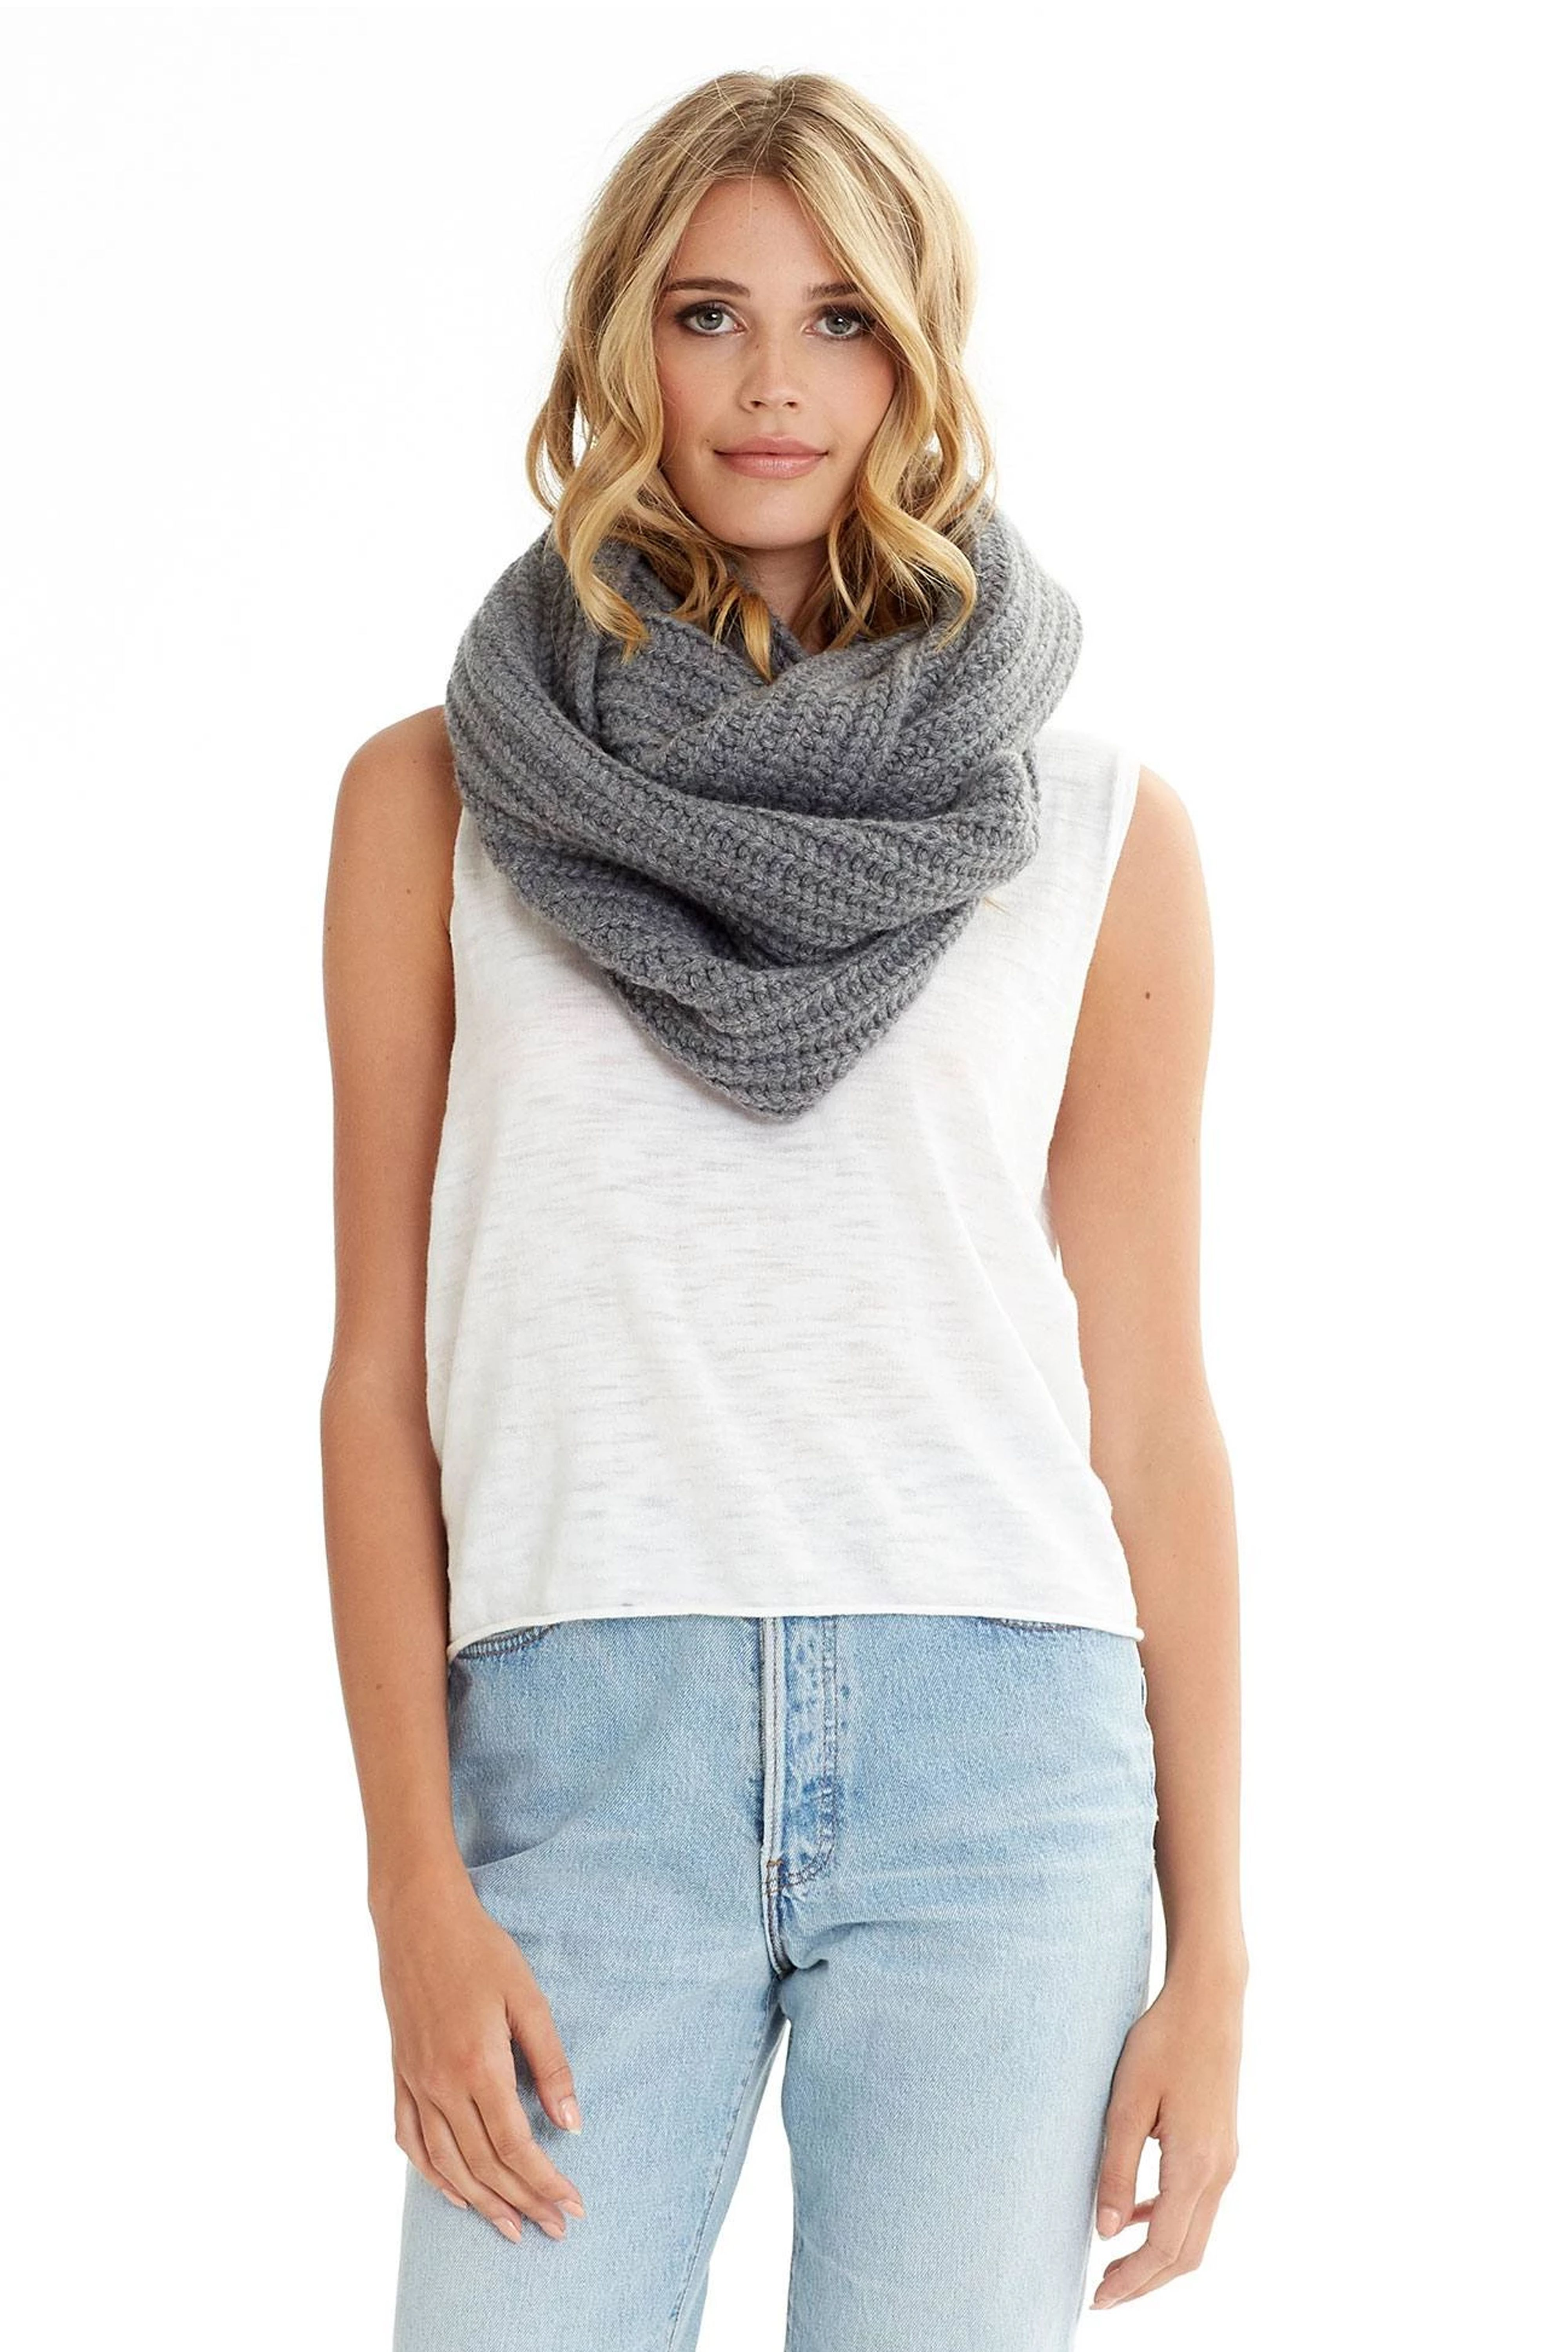 15 Best Fall Scarves For Women 2020 Warm And Stylish Scarves